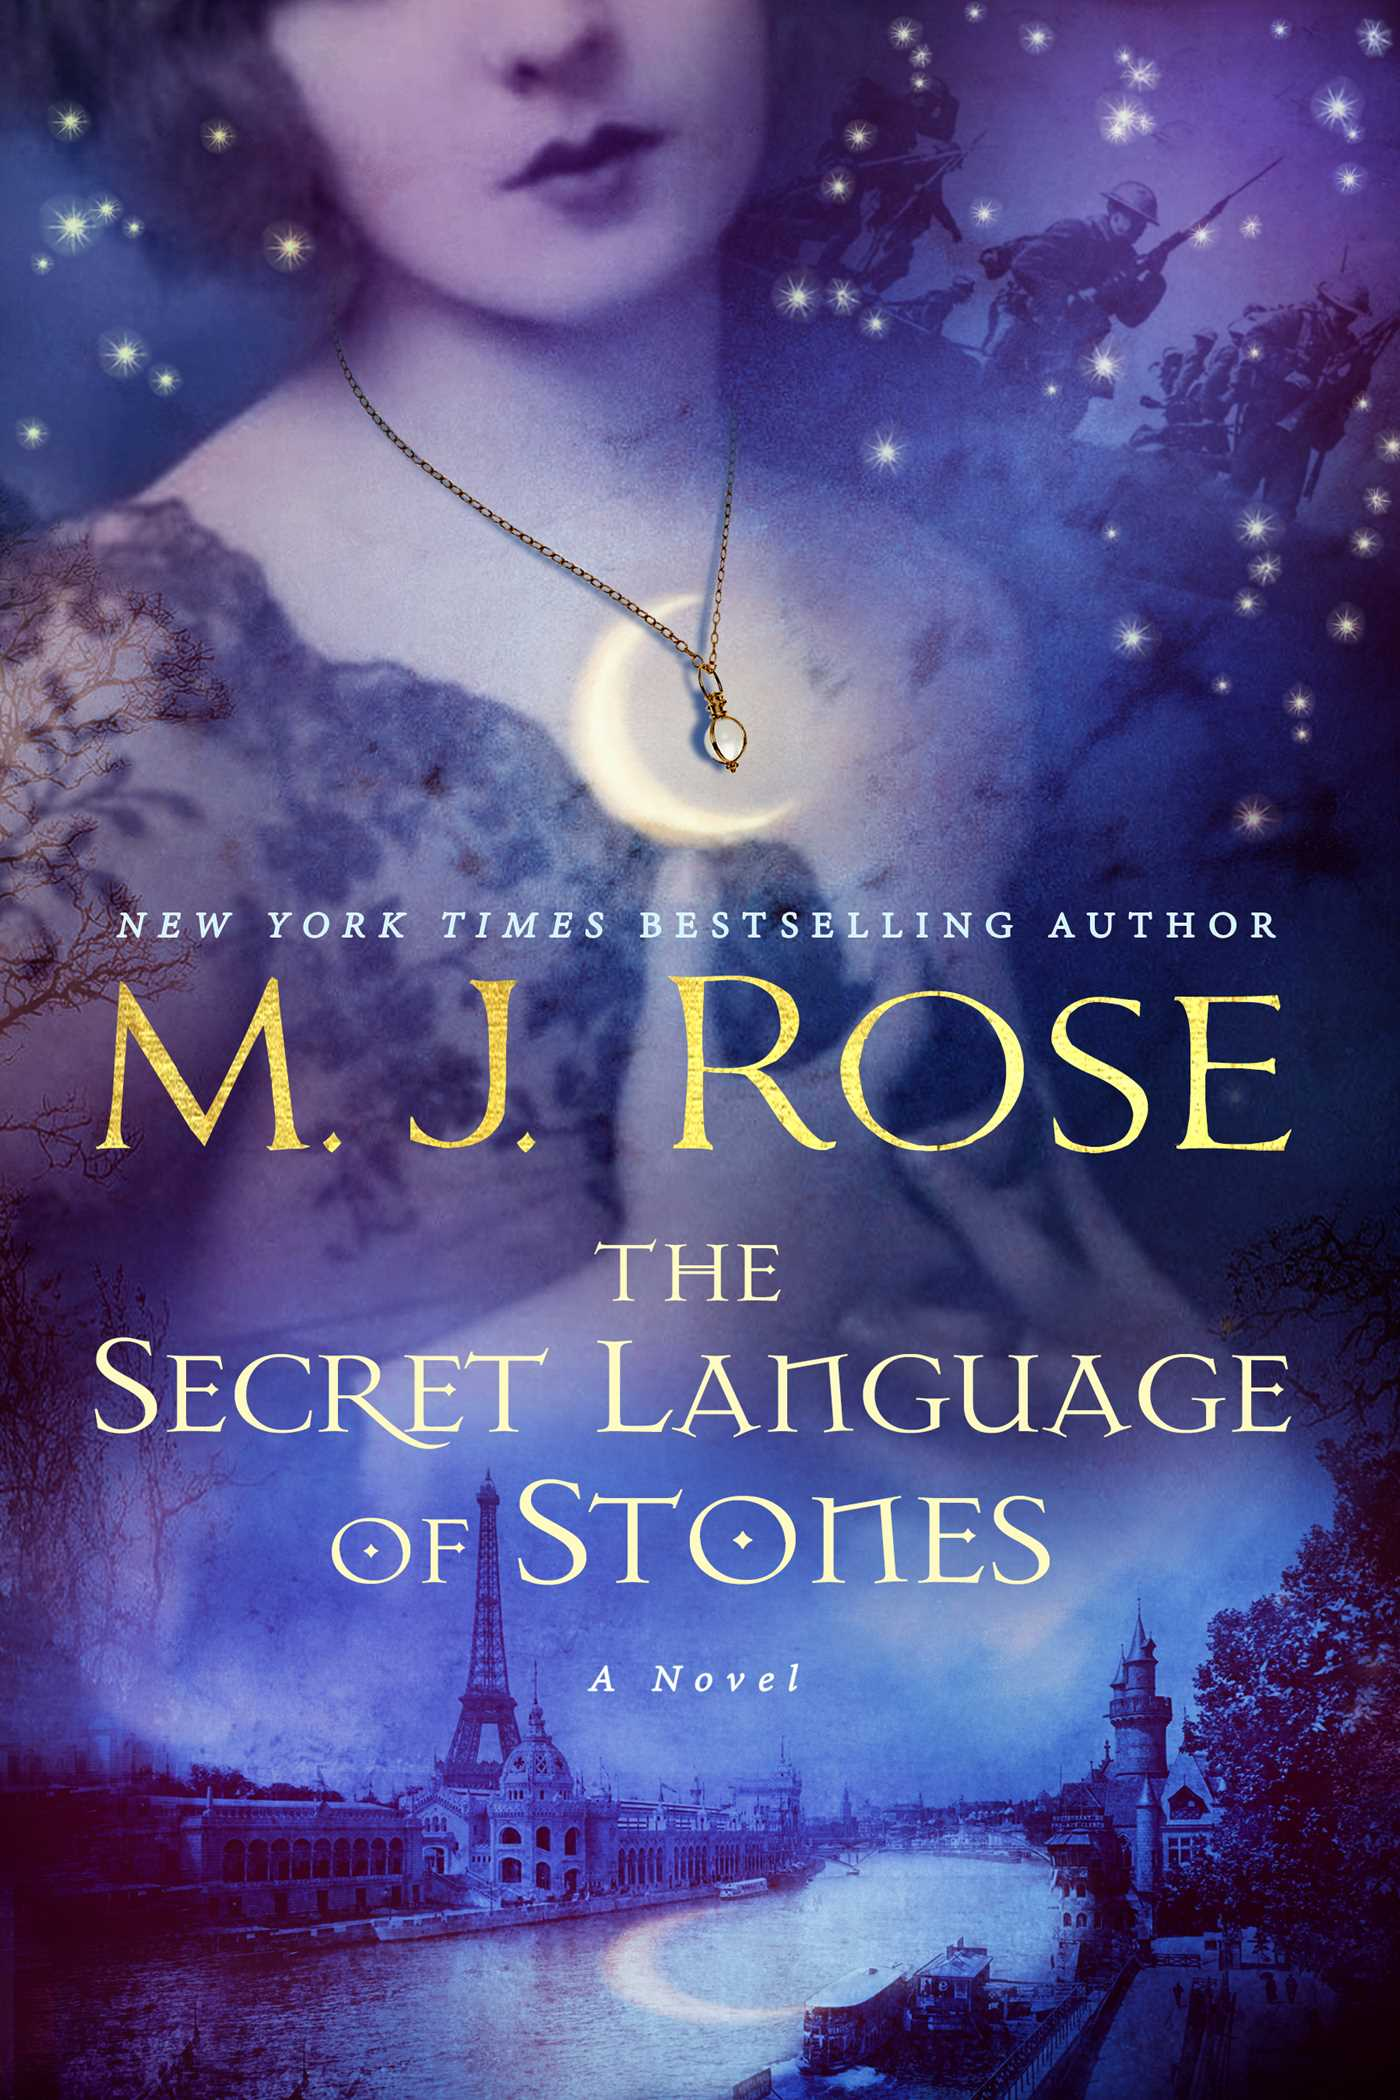 The secret language of stones 9781476778099 hr